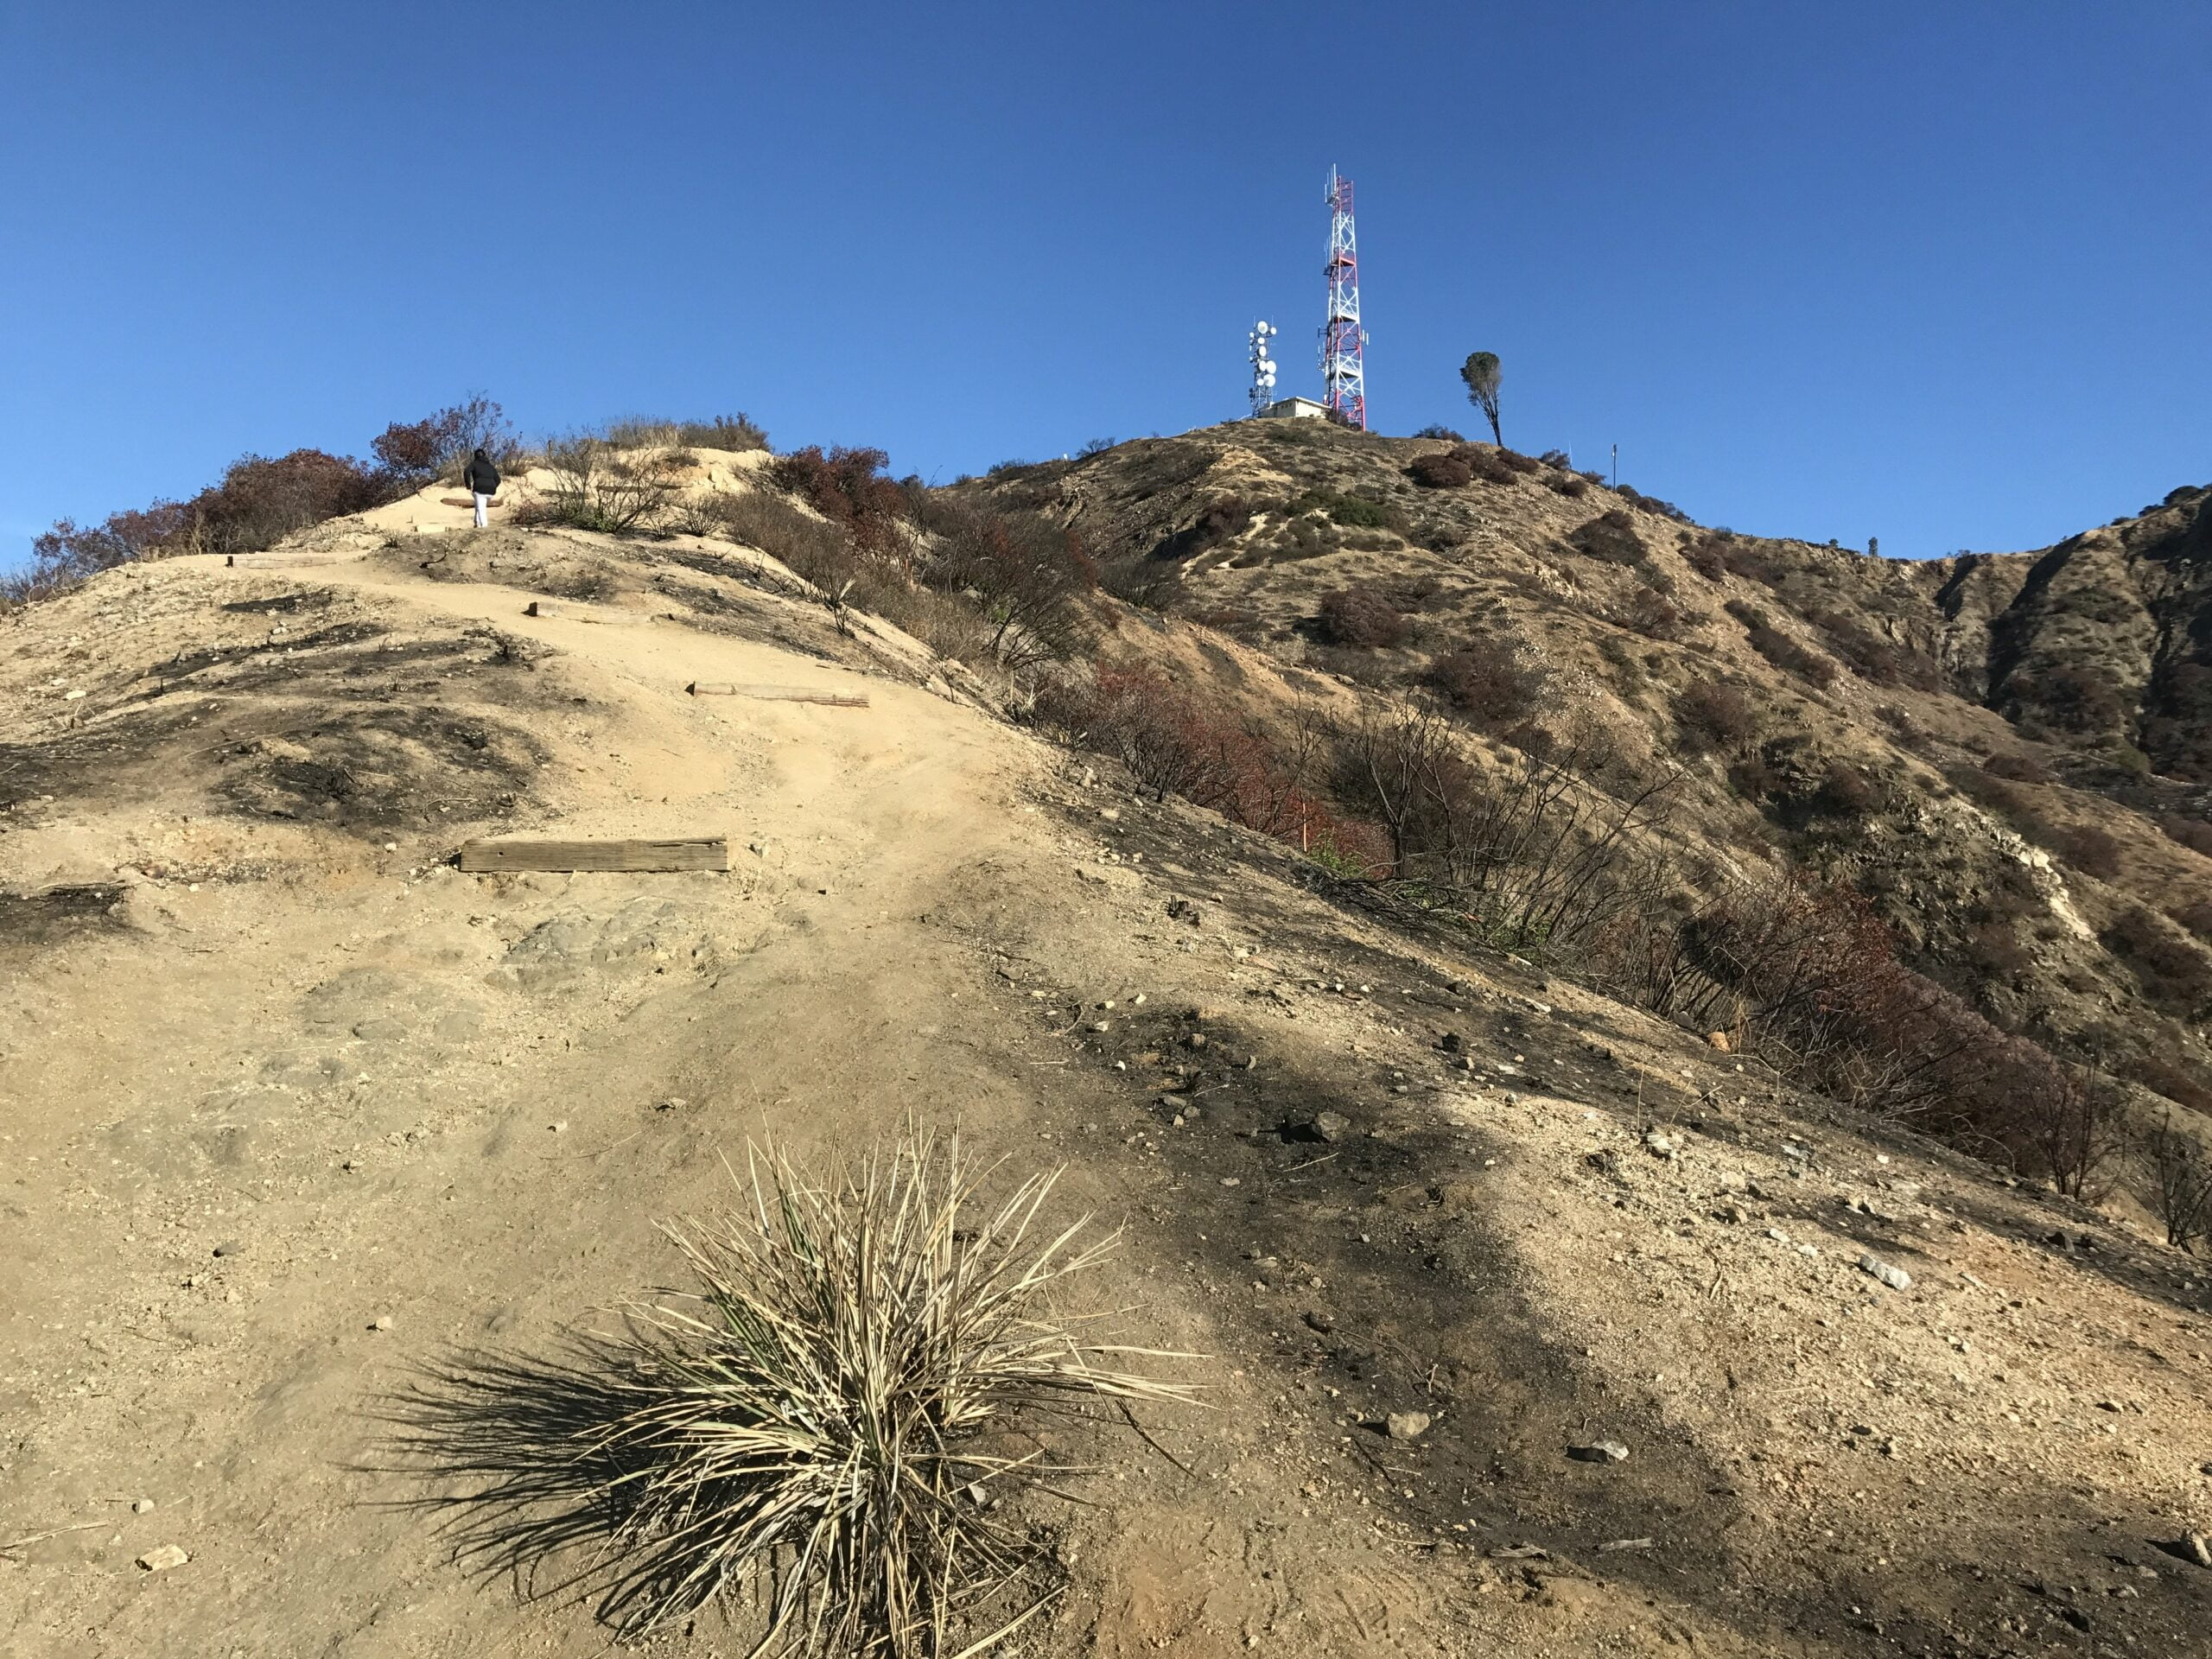 Wildwood canyon radio towers